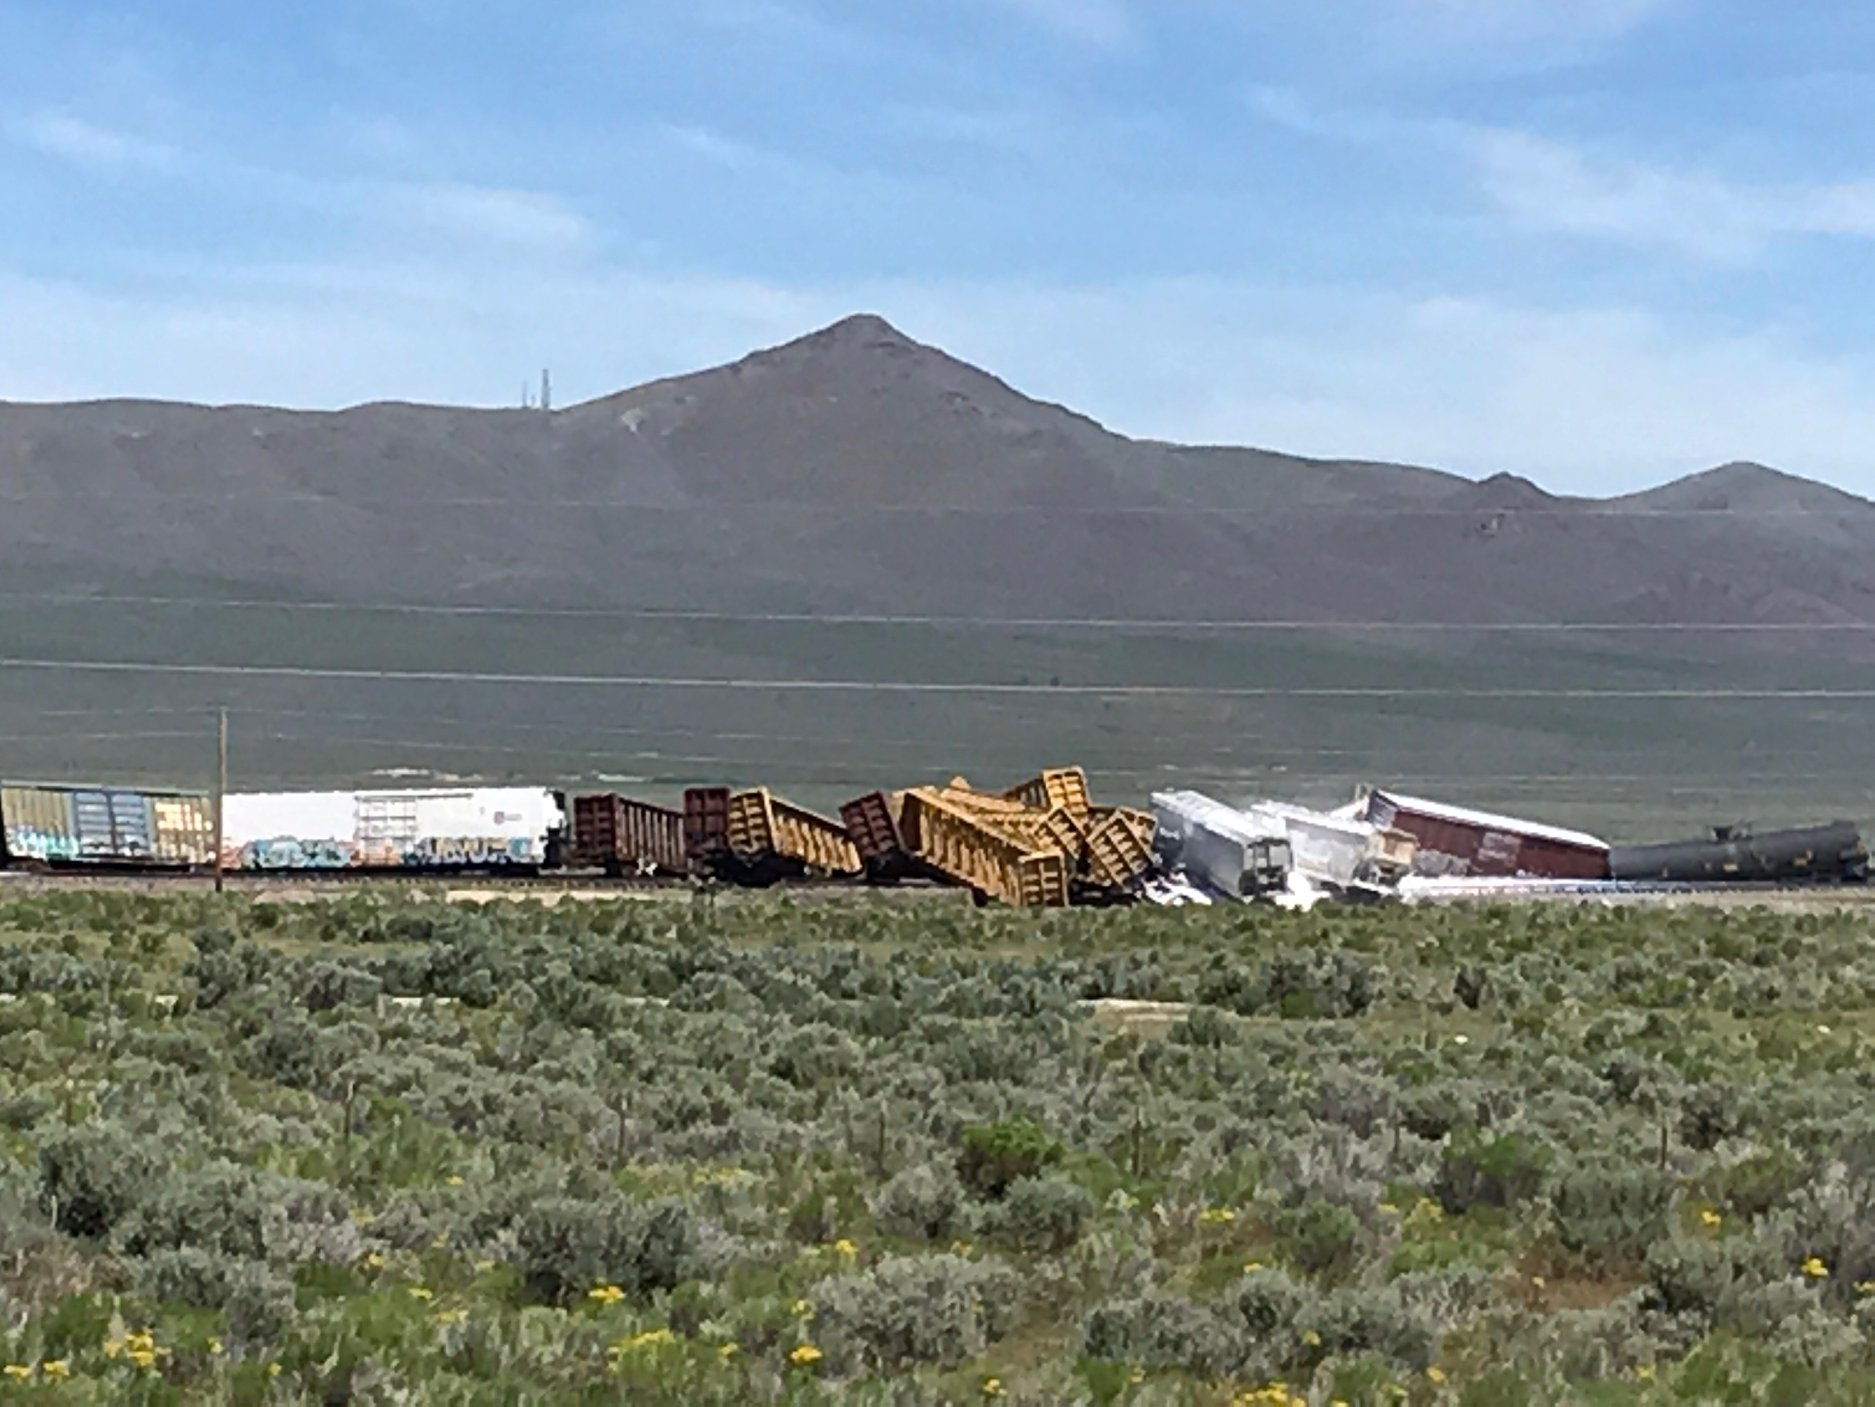 A various material spill of munitions closed Interstate 80 in both directions after a train derailed on late Wednesday morning in Elko County, Nevada. (Photo Courtesy of Nevada Highway Patrol)